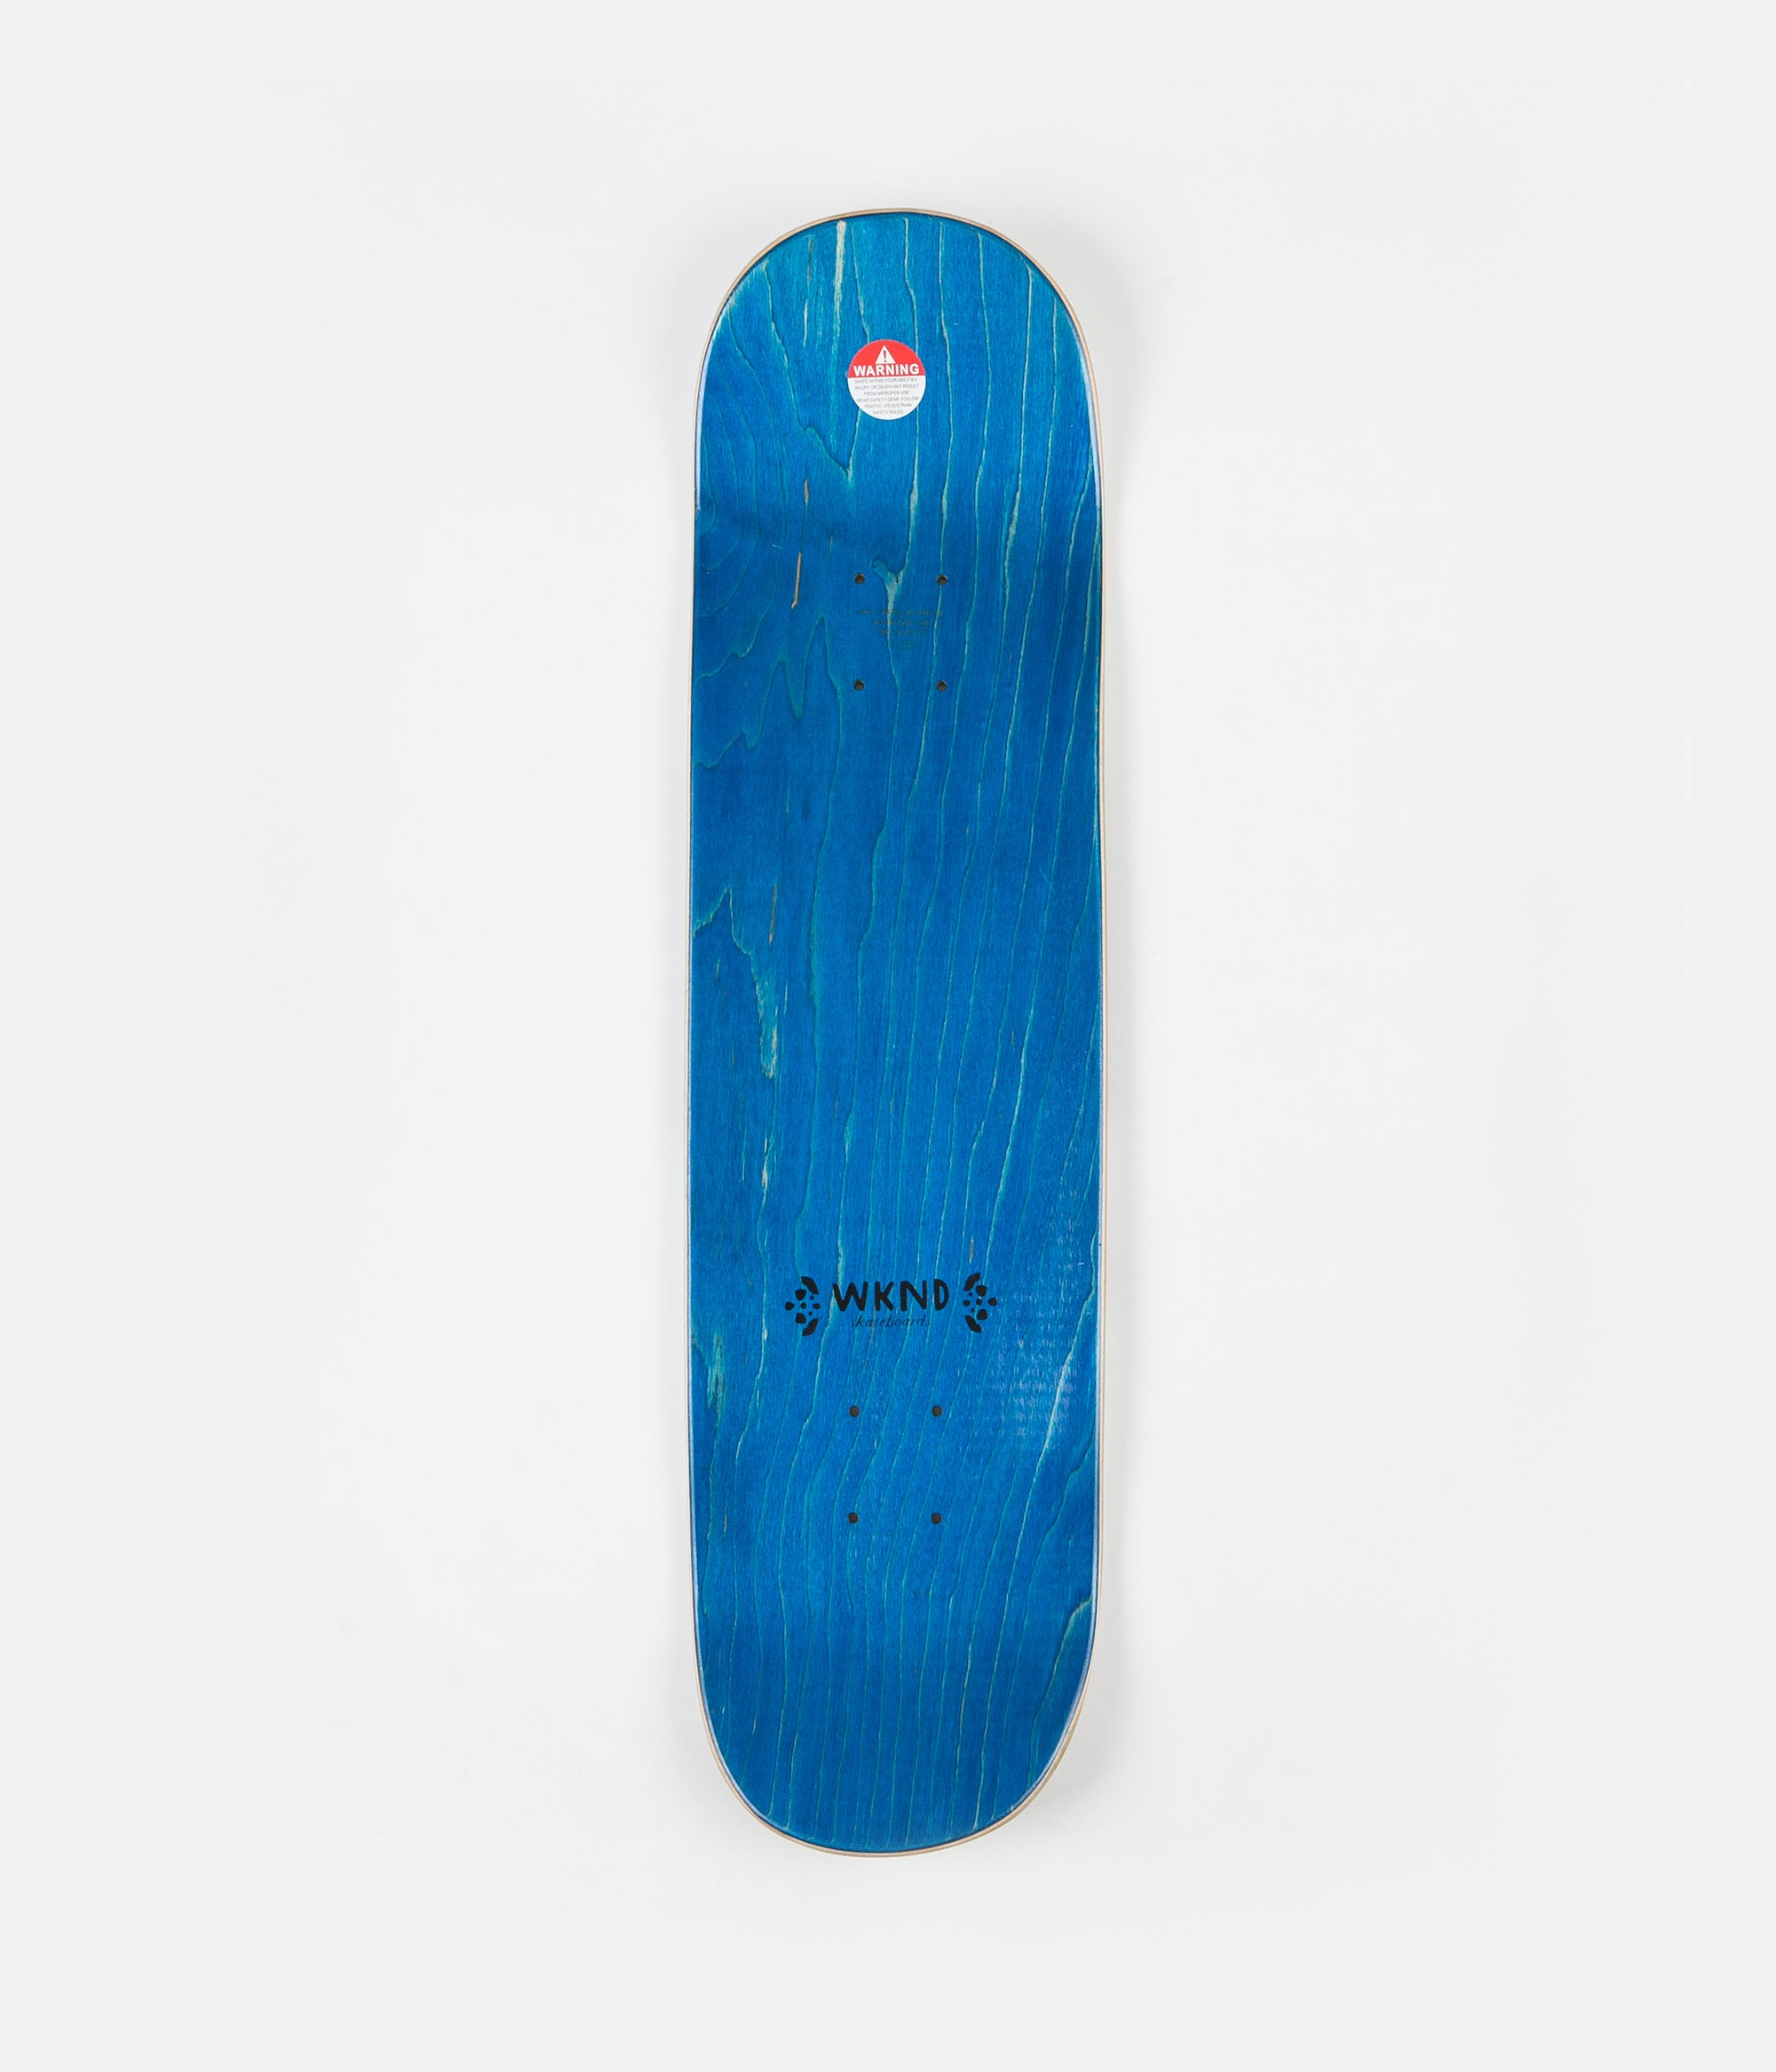 WKND Johan Stuckey Deck - 8.25""